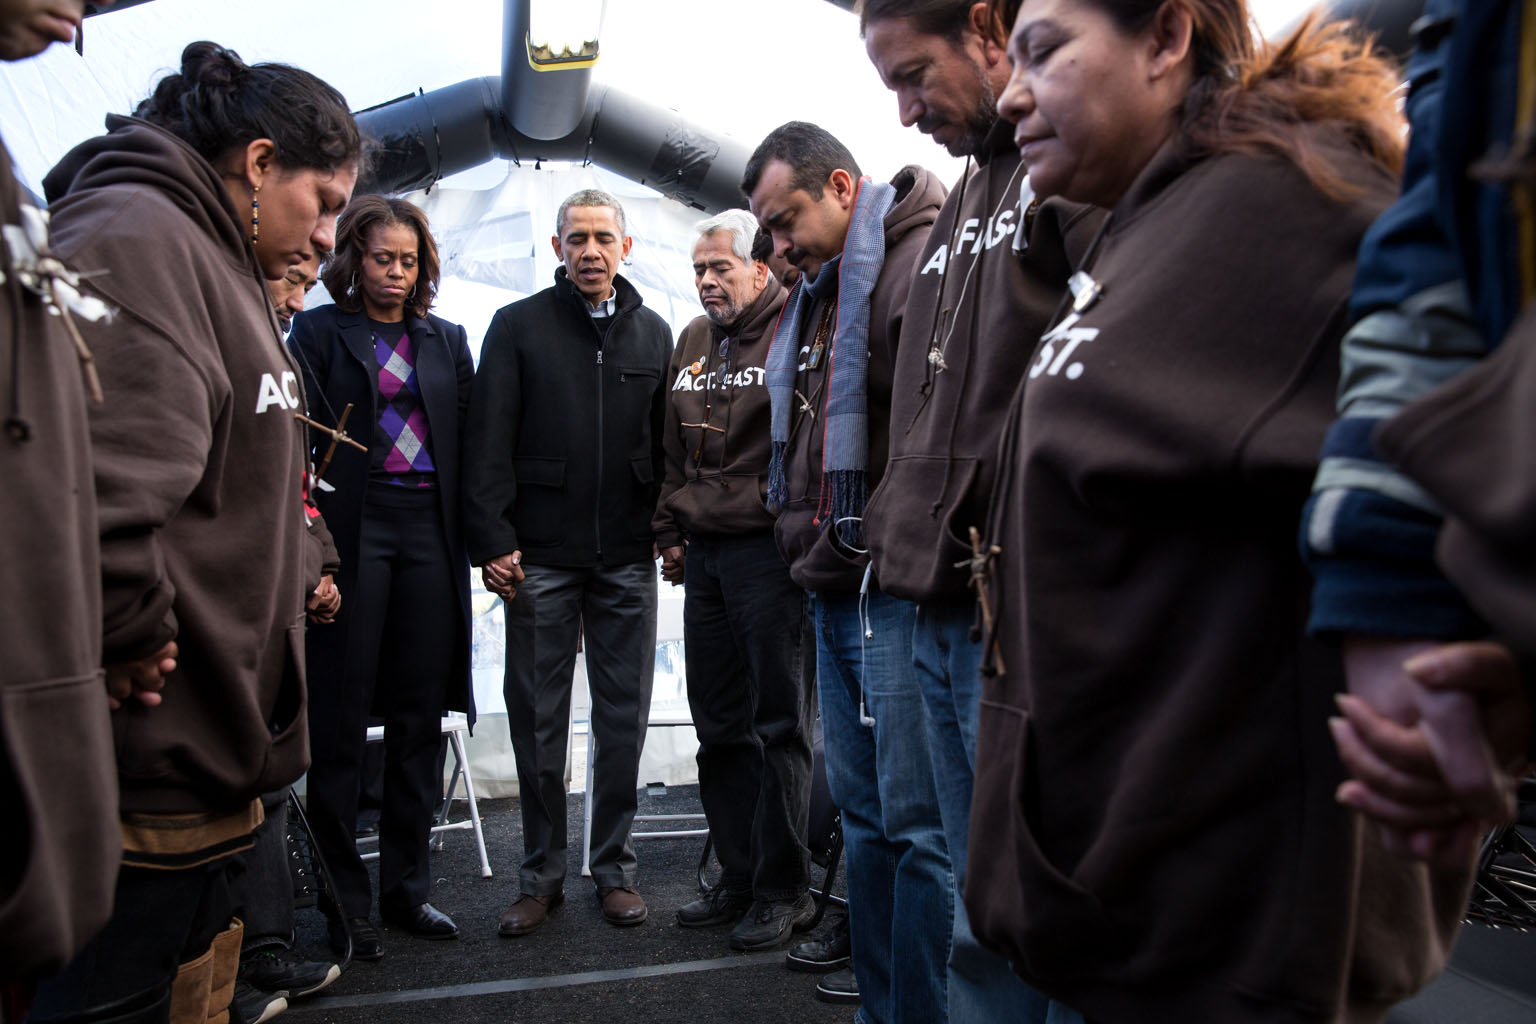 President Obama and the First Lady visited the brave individuals who are fasting in the shadow of the Capitol, sacrificing their health in an effort to get Congress to act swiftly on commonsense immigration reform.